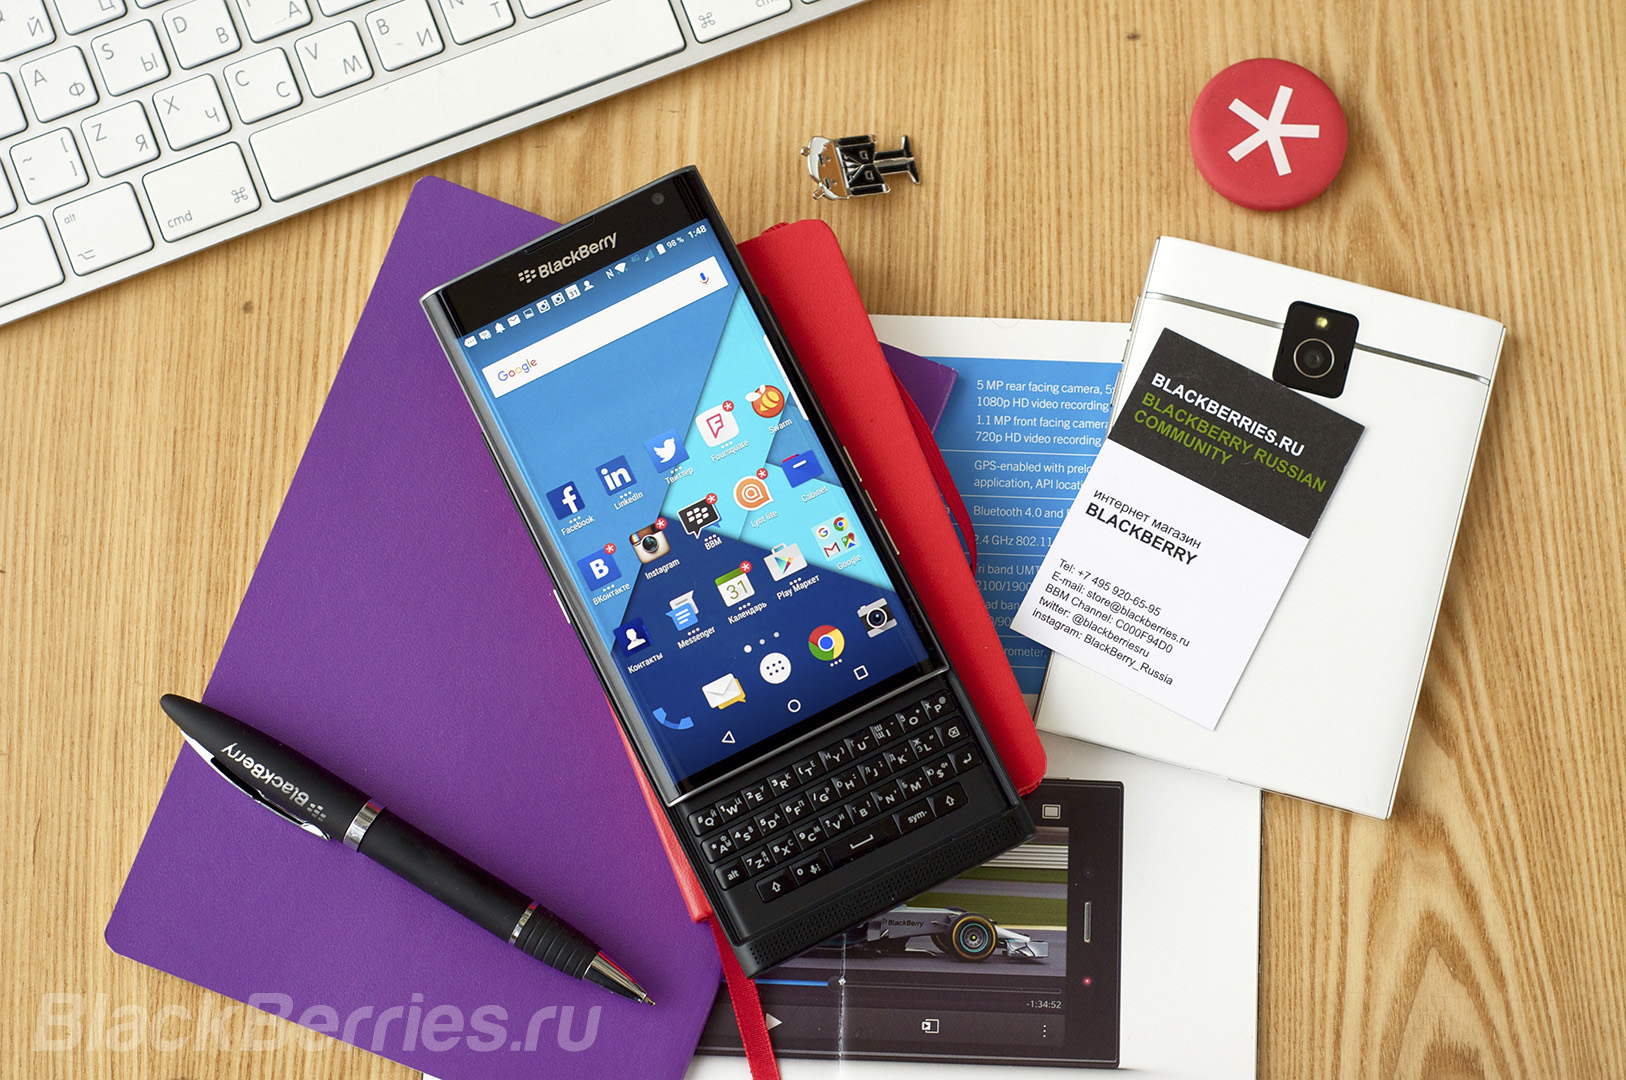 BlackBerry-Priv-Review-012